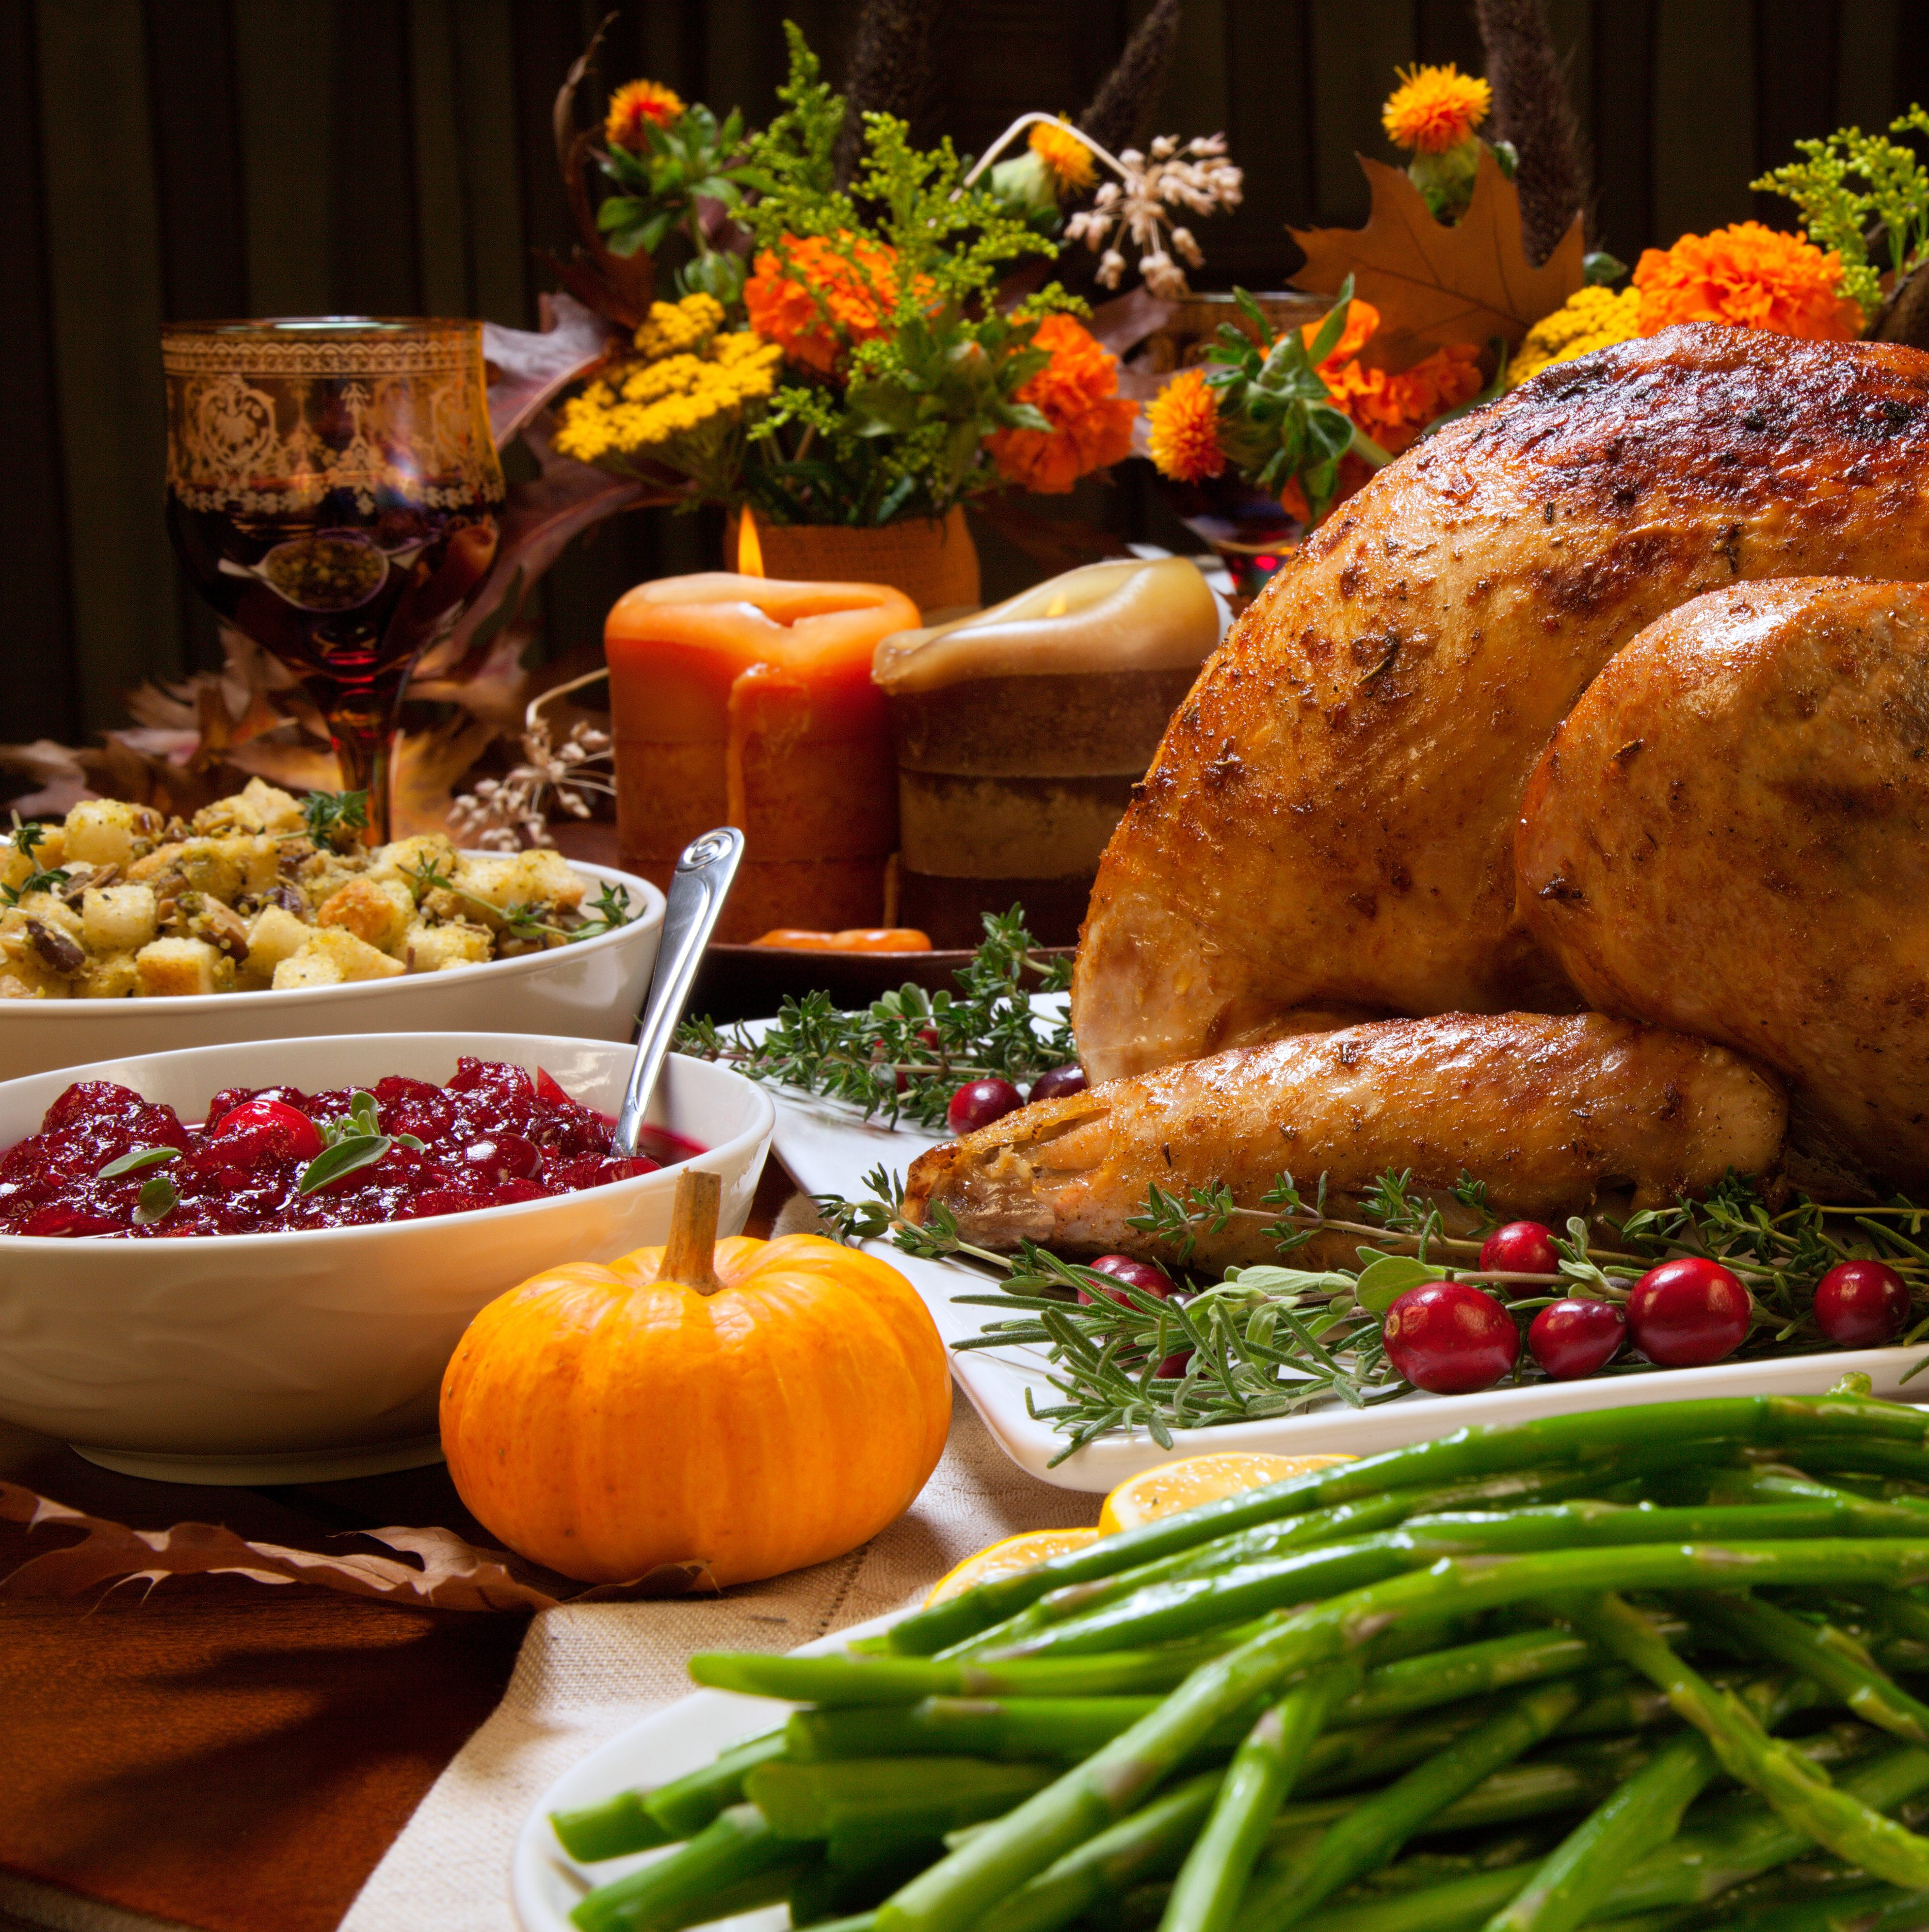 Roasted turkey garnished with cranberries on a rustic style table decorated with pumpkins, gourds, asparagus, brussel sprouts, baked vegetables, pie, flowers, and candles.